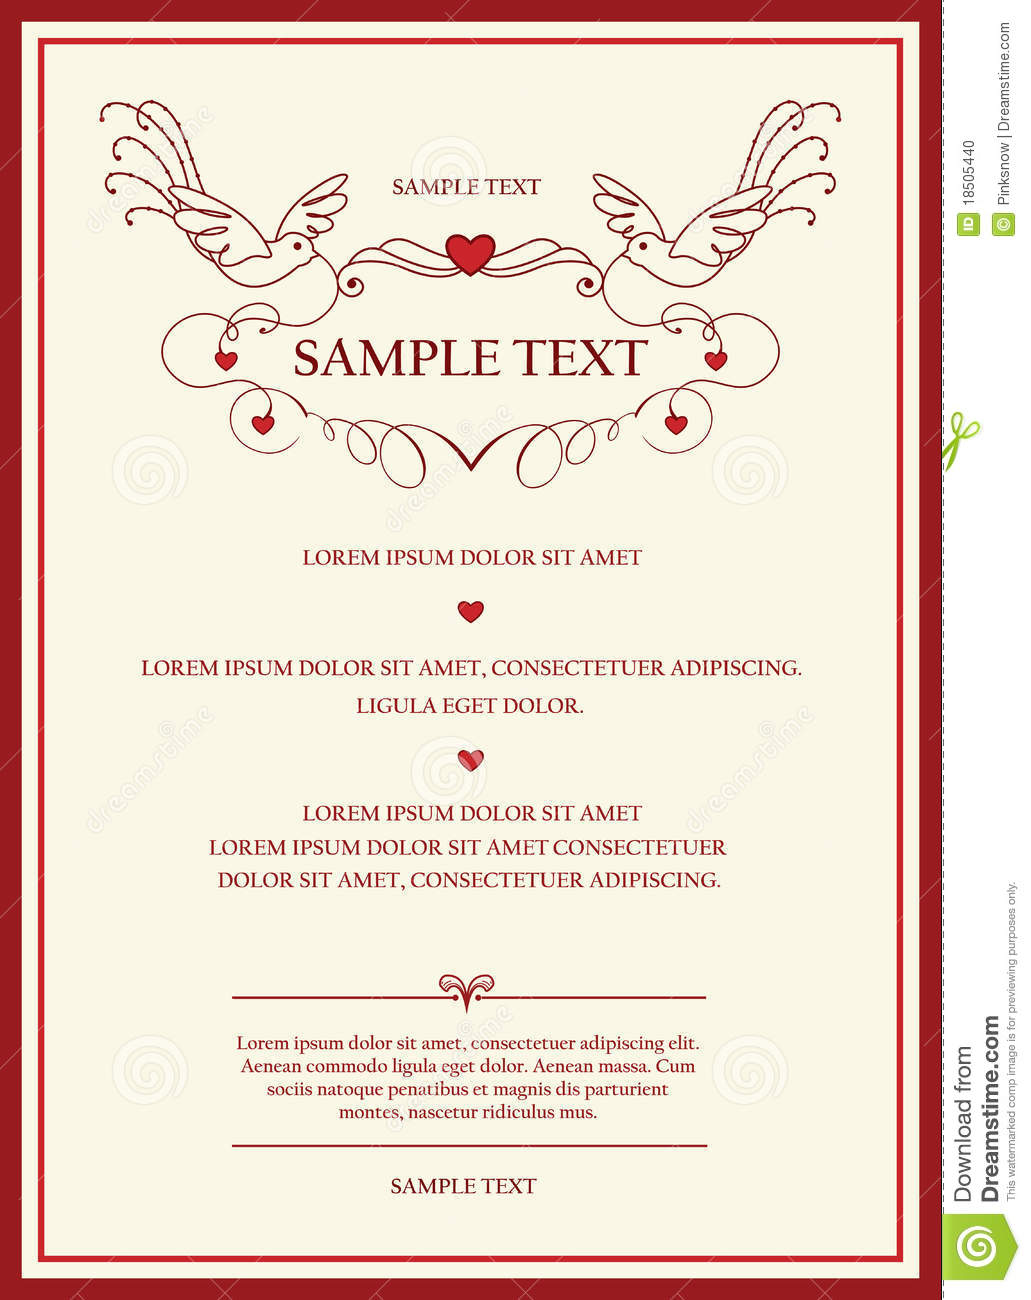 Wedding invitation card stock vector. Illustration of emblem - 18505440